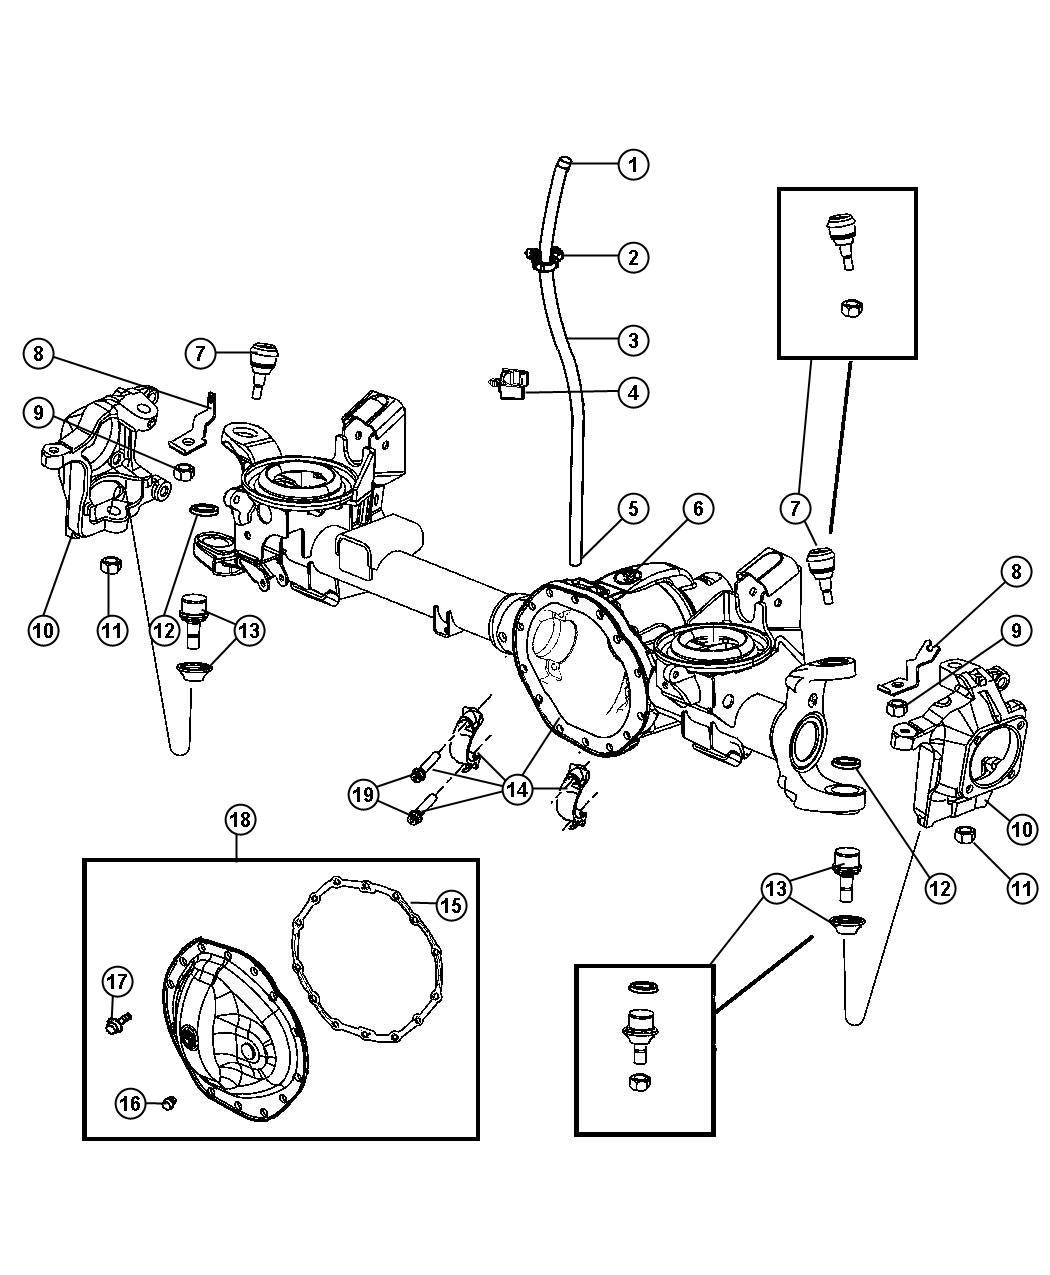 dodge ram front suspension diagram pv and ts of diesel cycle 2500 end free engine image for